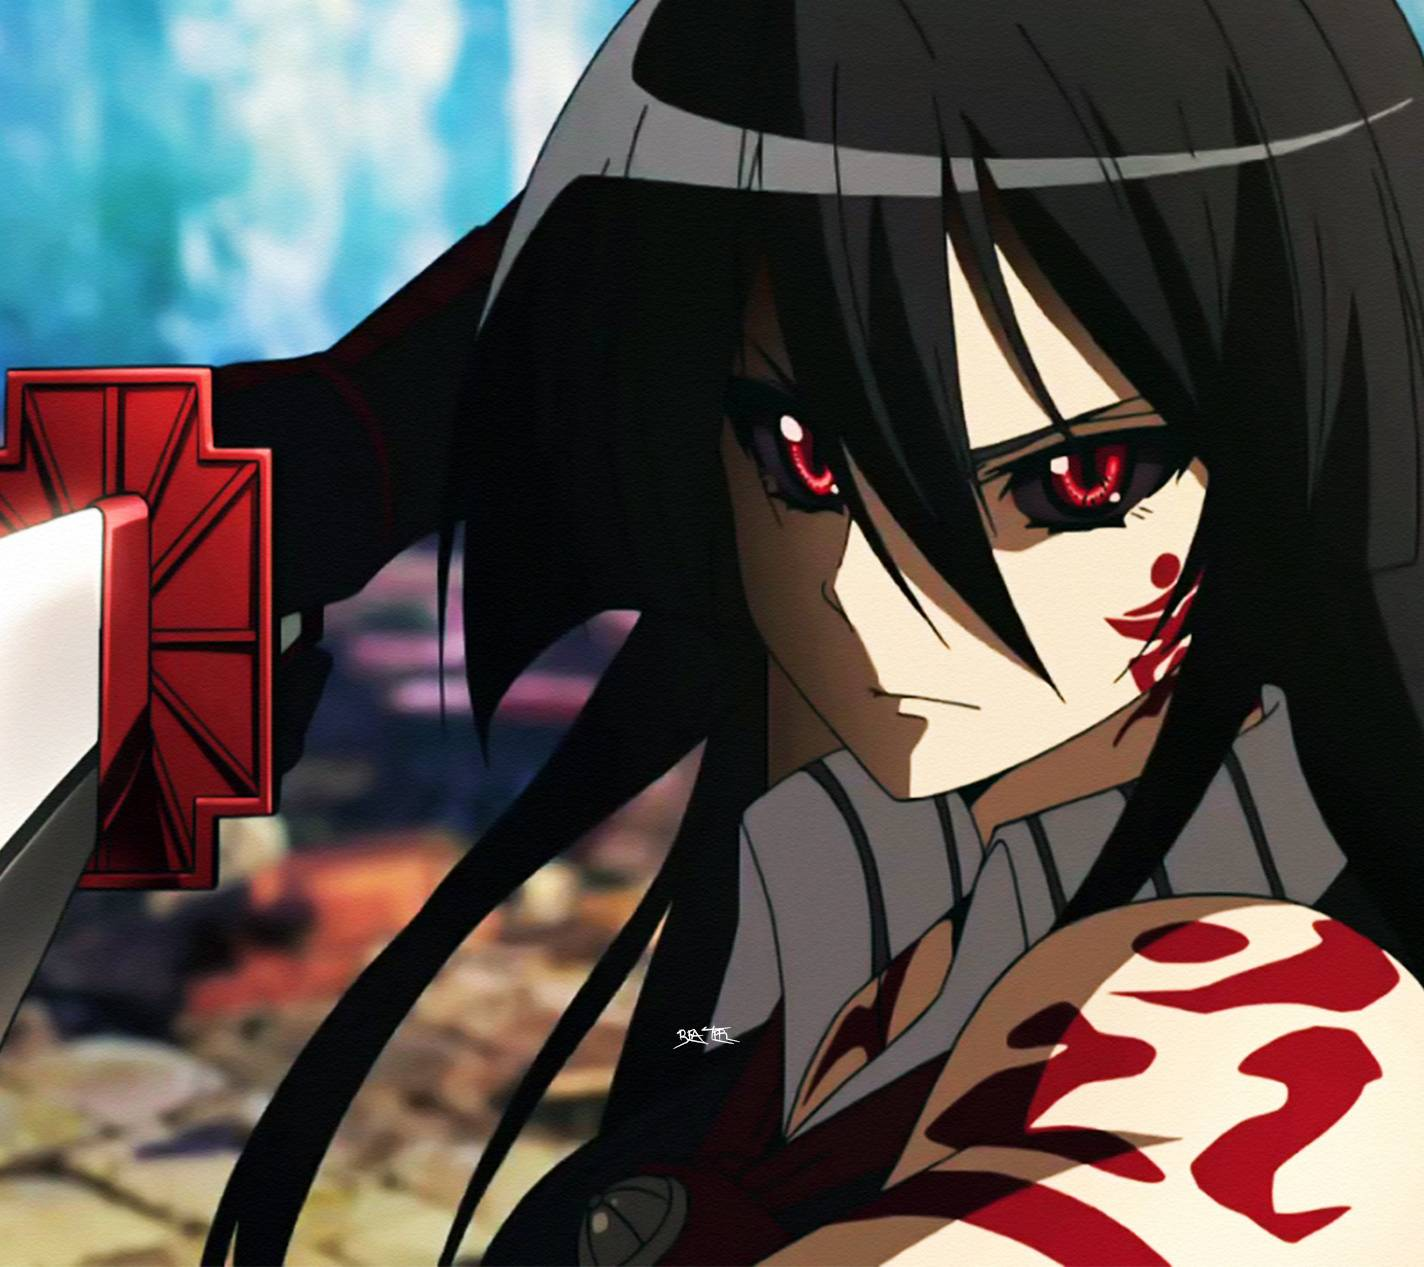 Akame Ga Kill Wallpaper By Beater Anime 83 Free On Zedge